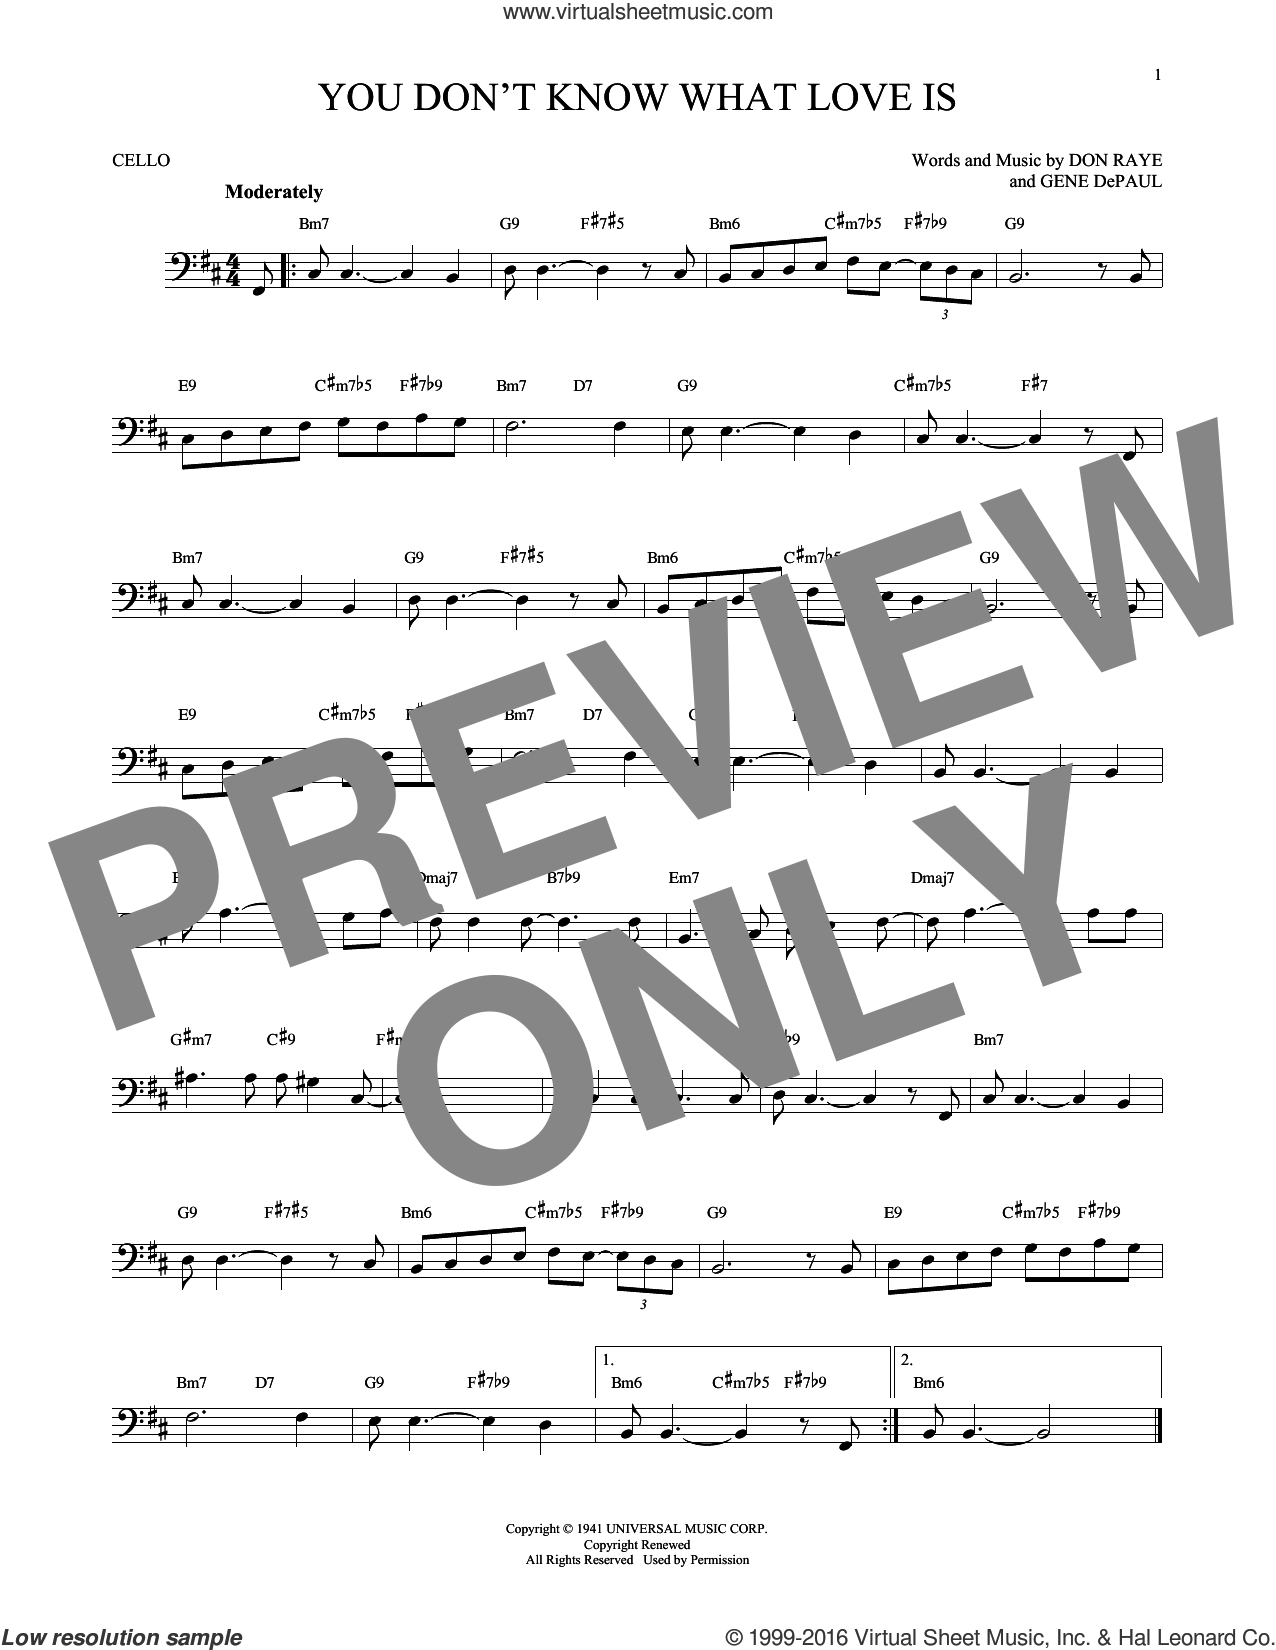 You Don't Know What Love Is sheet music for cello solo by Don Raye, Carol Bruce and Gene DePaul, intermediate skill level